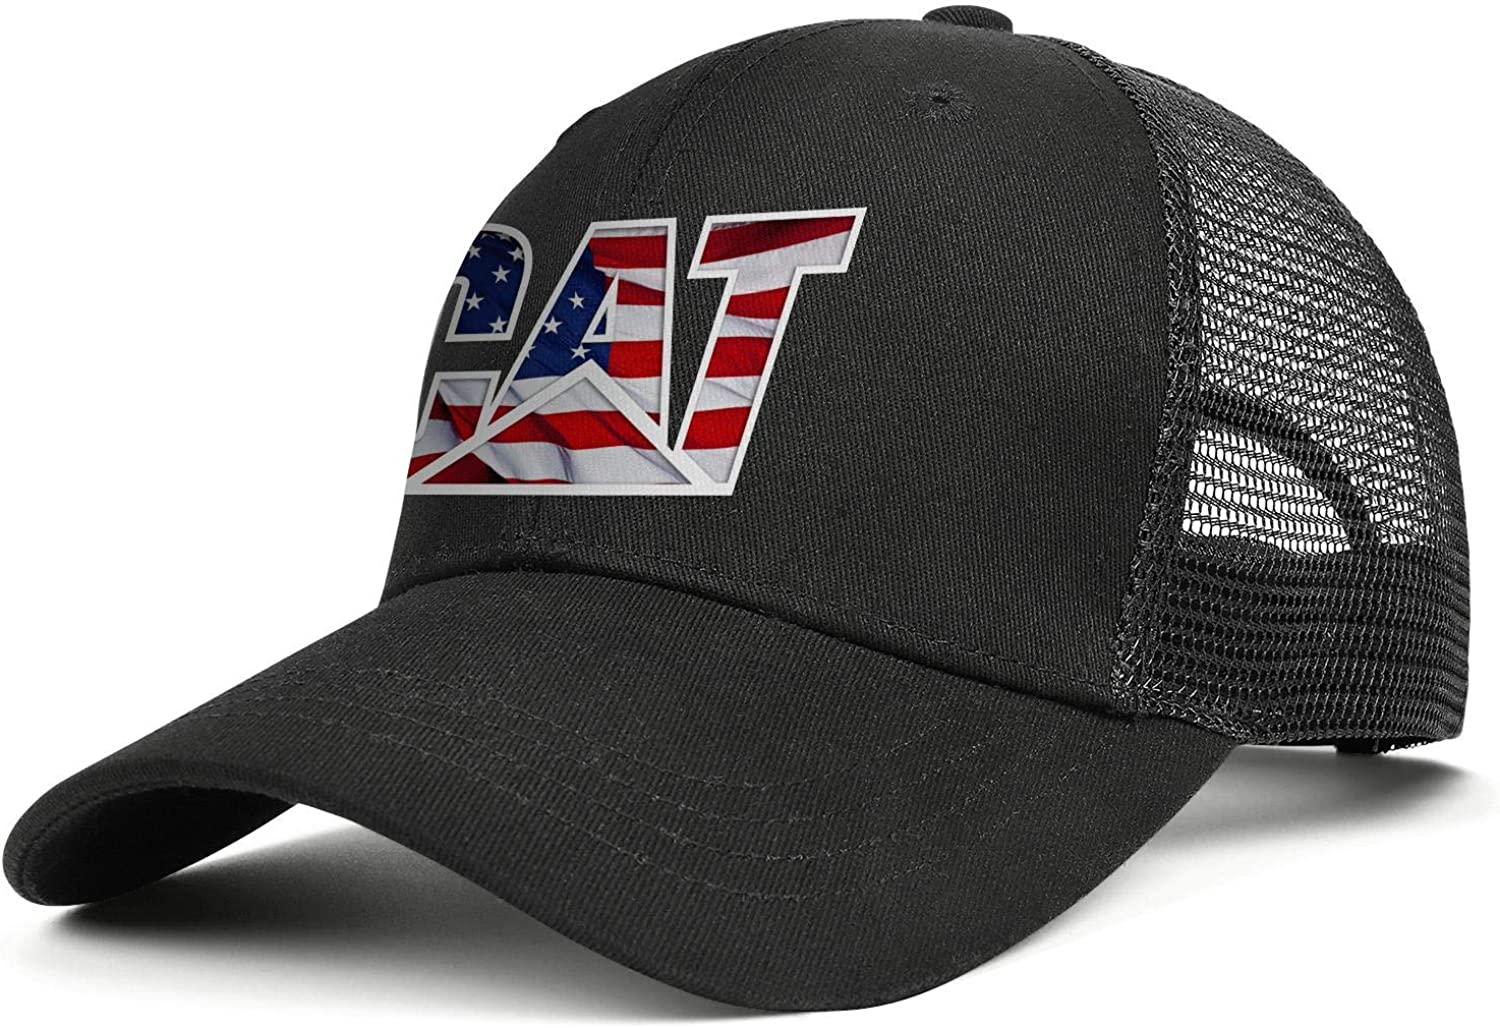 Women Men Baseball Cap CAT-Diesel-Power-American-F Ranking TOP17 Fixed price for sale Fashion Adult